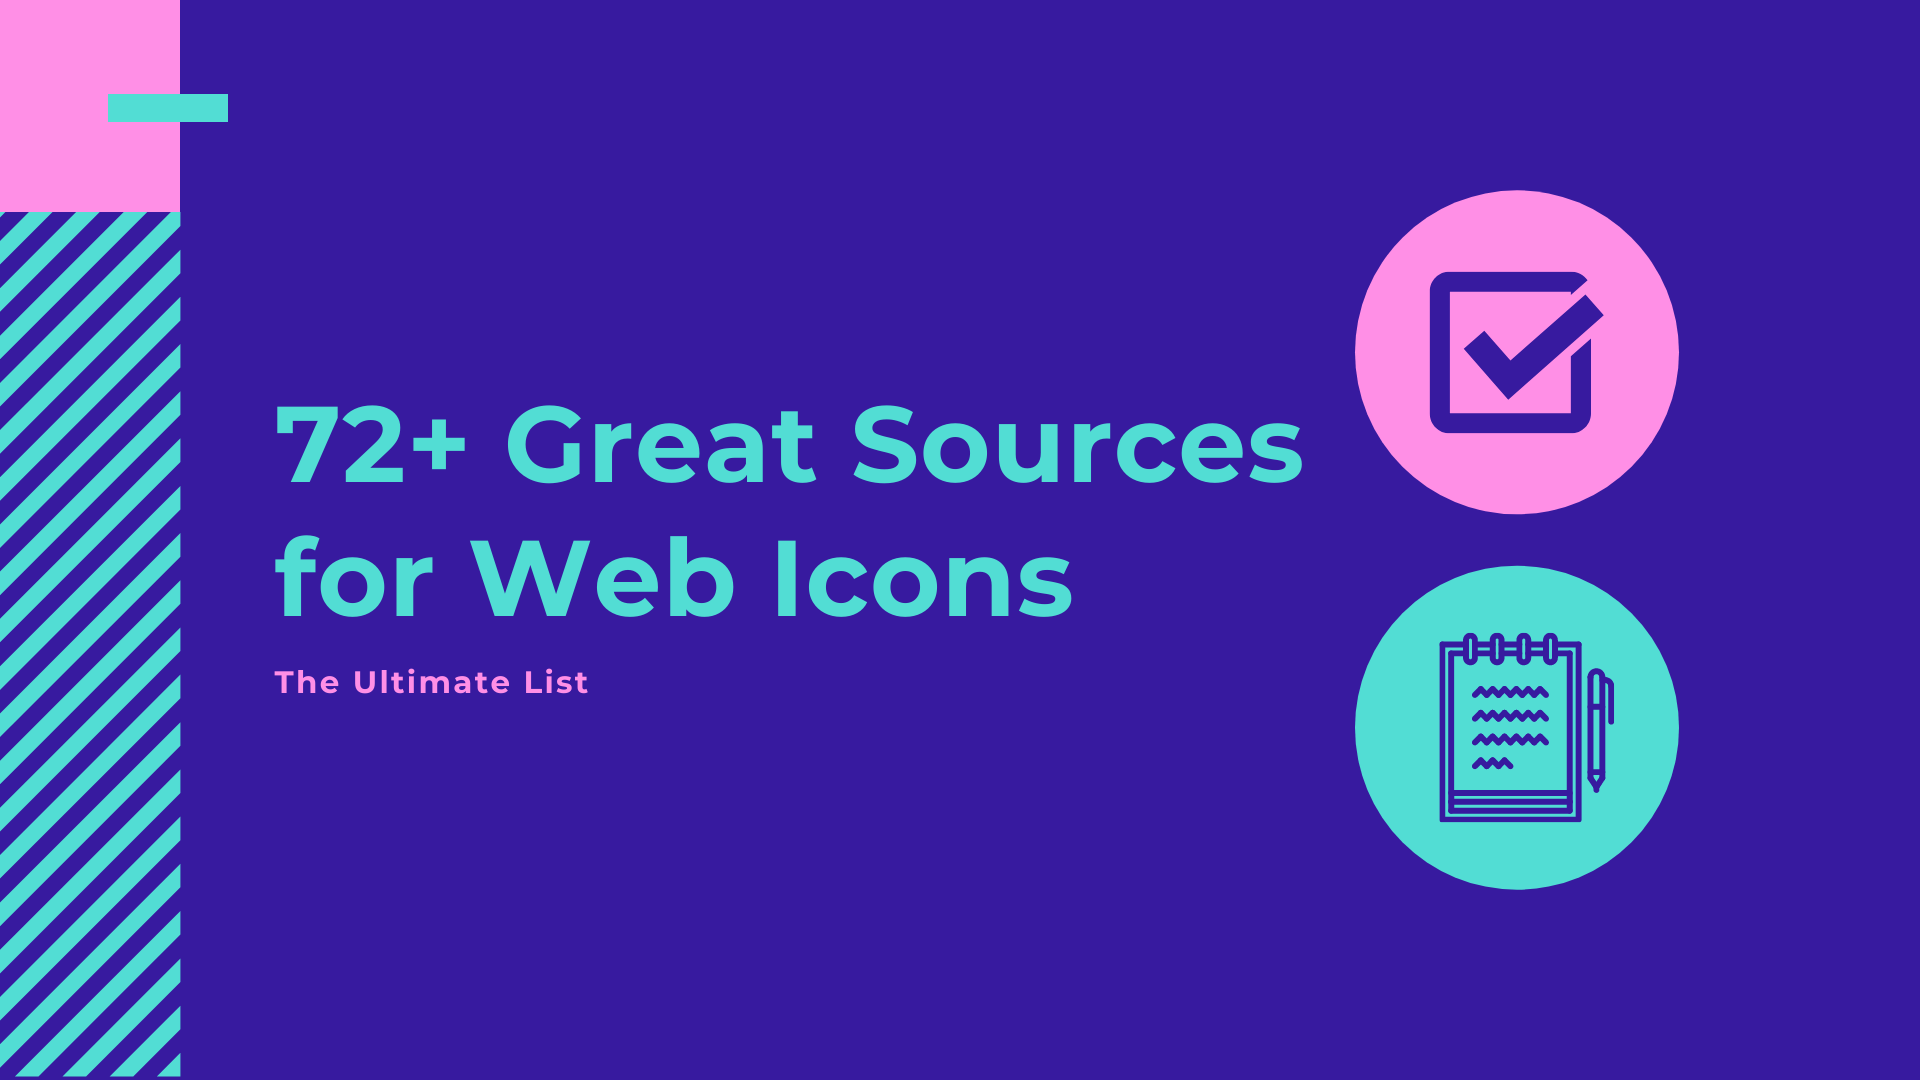 72+ Great Sources for Web Icons